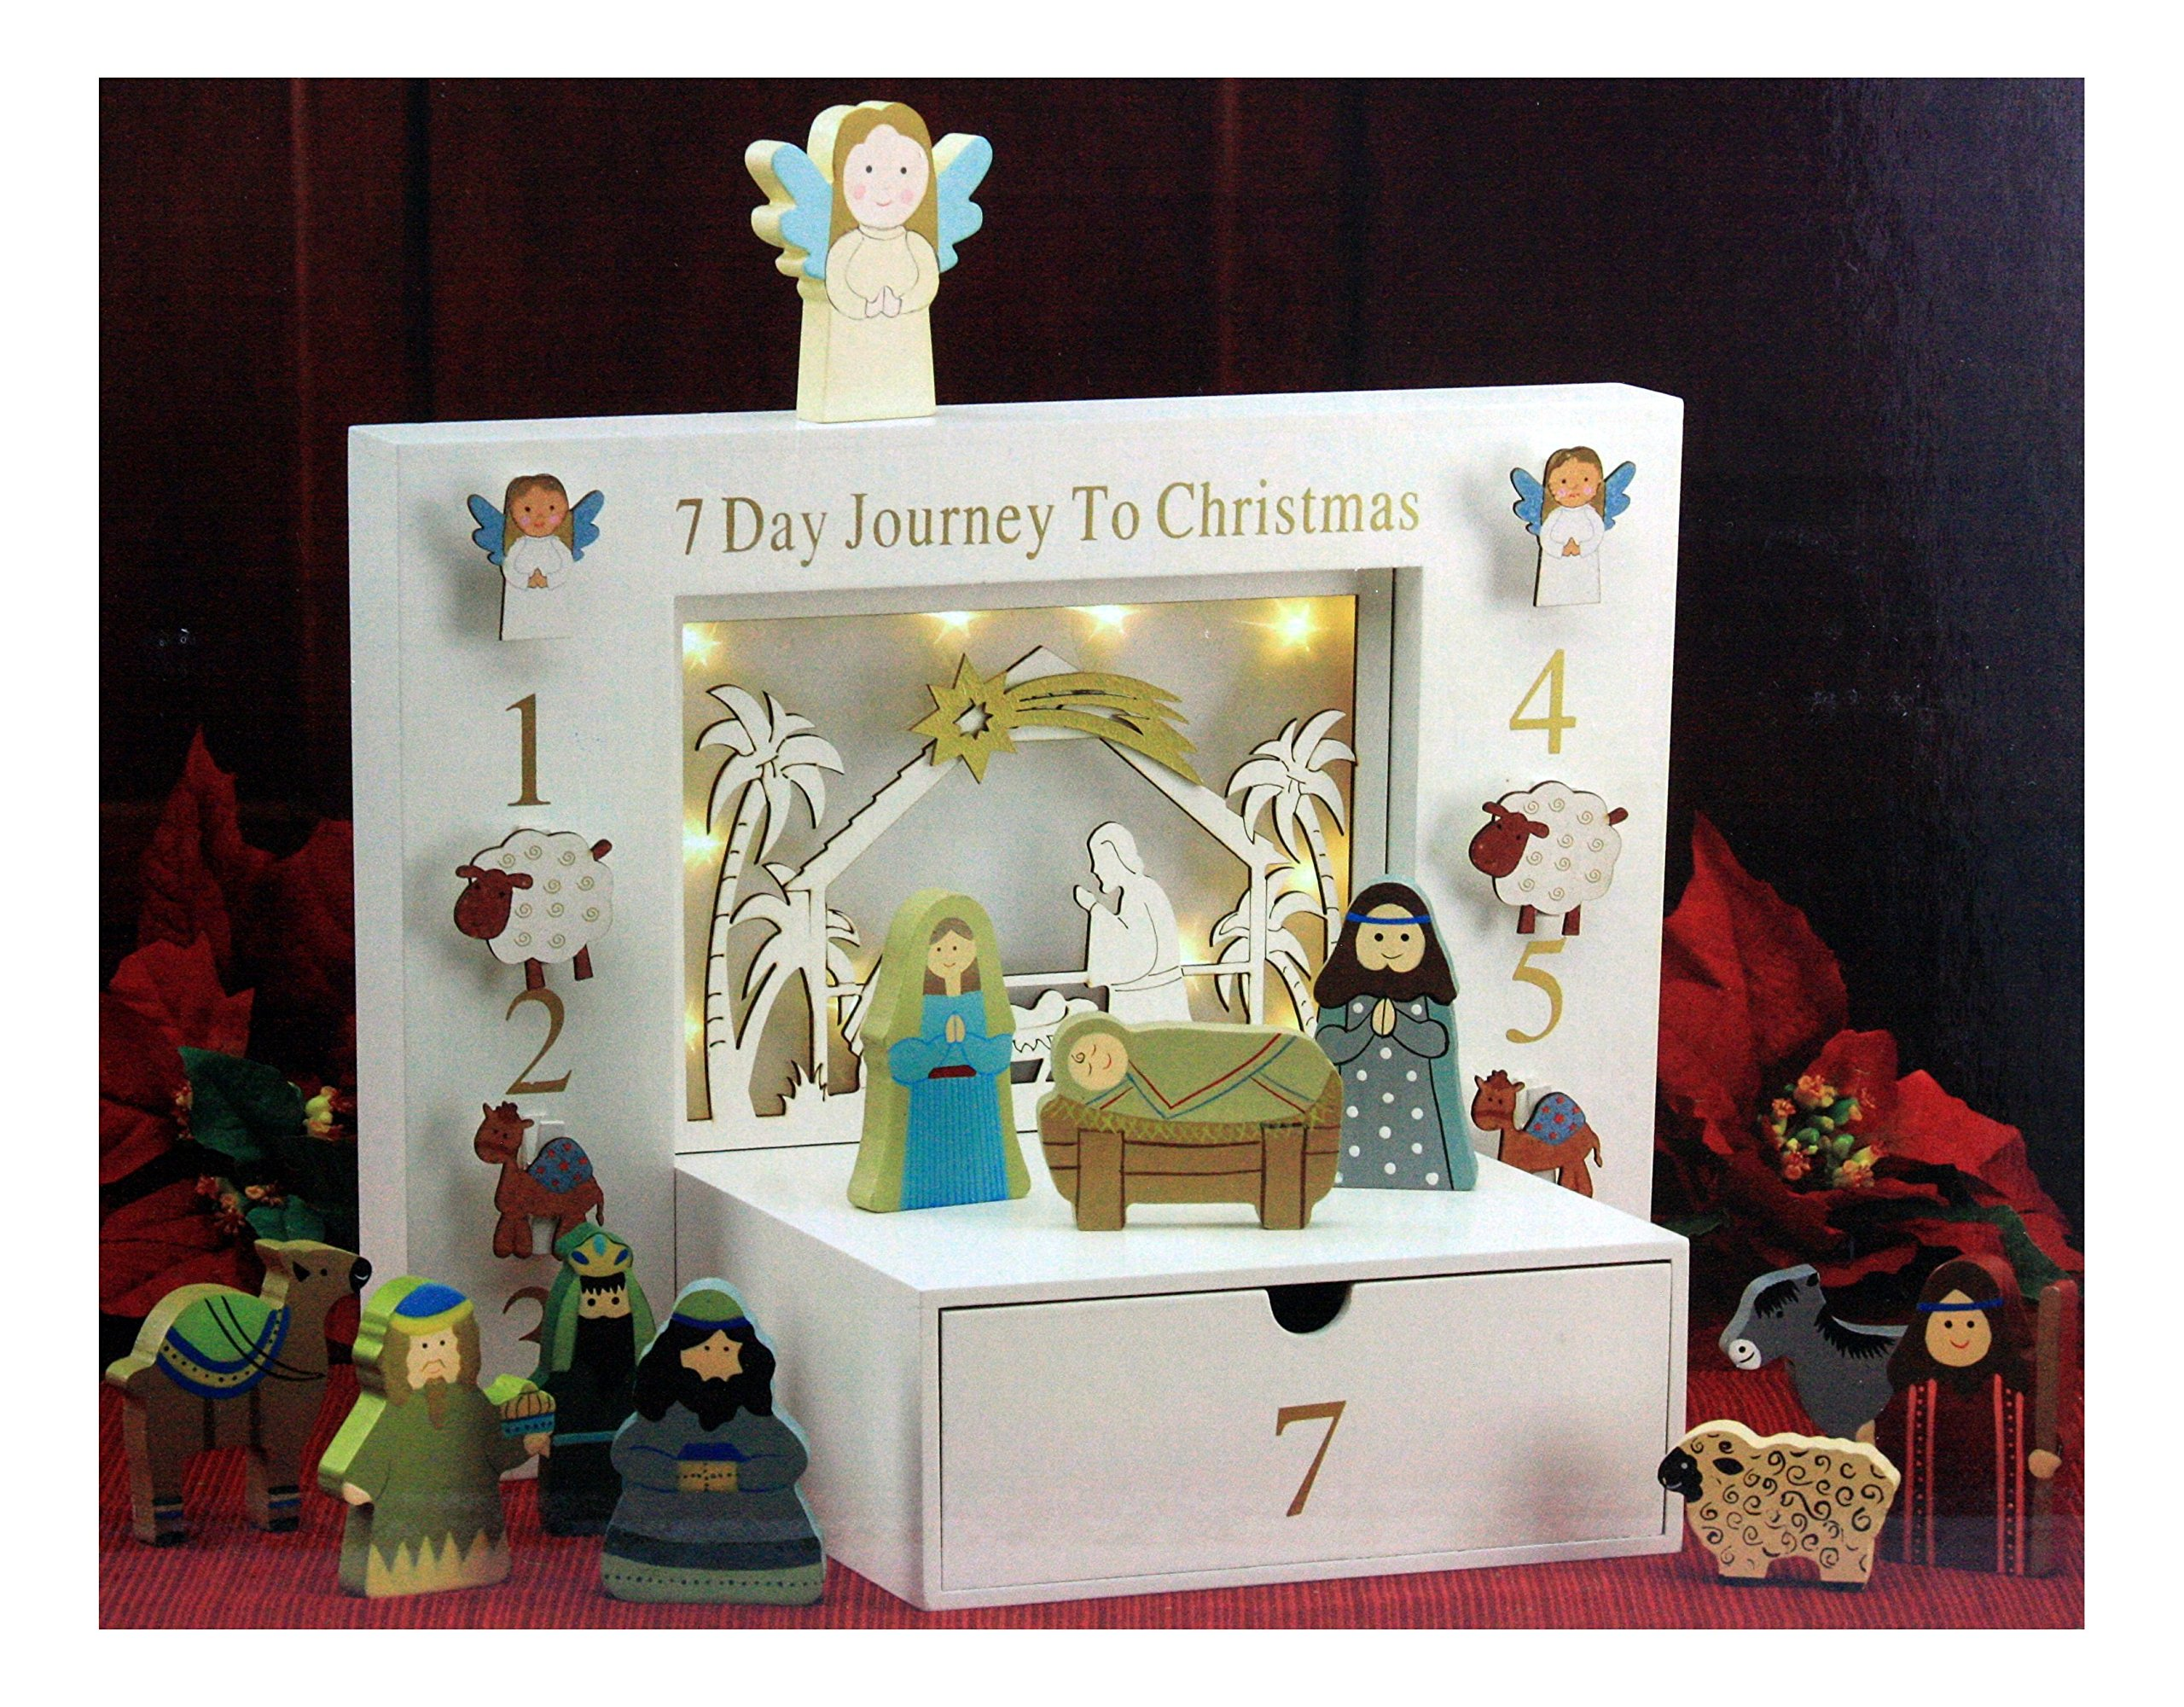 THREE KINGS GIFTS THE ORIGINAL GIFTS OFCHRISTMAS 7 Day Journey to Christmas Children's Interactive Wood Block Nativity 12 Piece Set